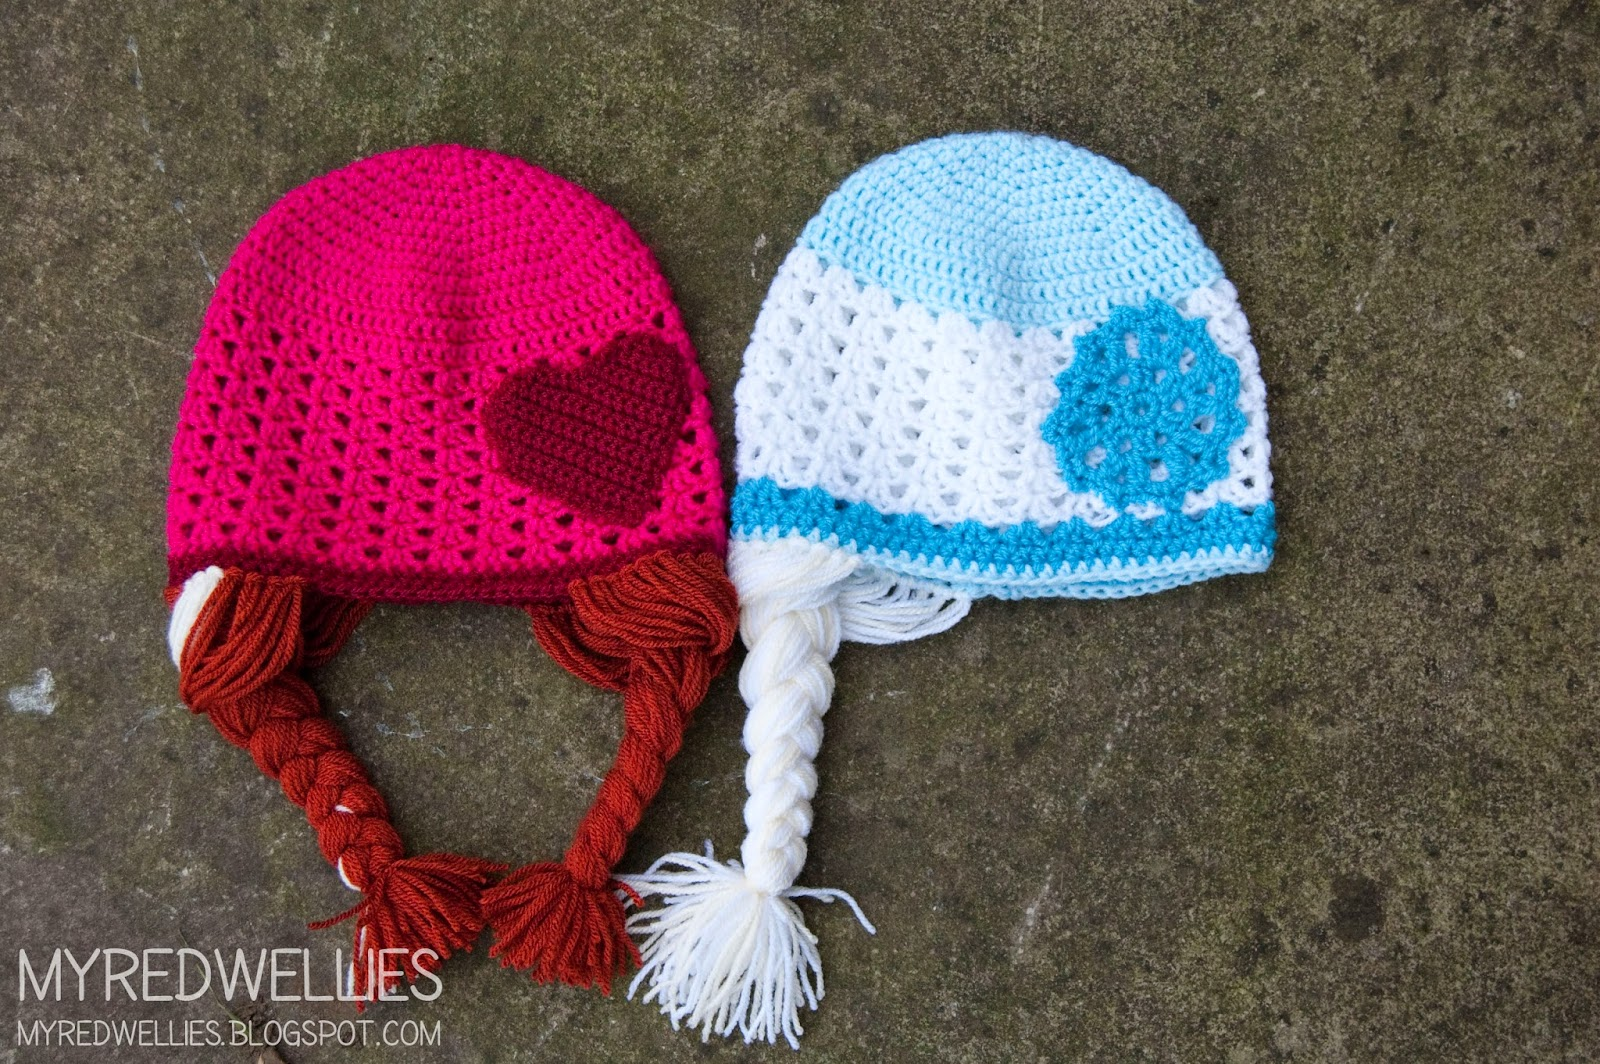 Crochet Pattern Anna Hat : My Red Wellies: Anna & Elsa crochet hats - A free Crochet ...